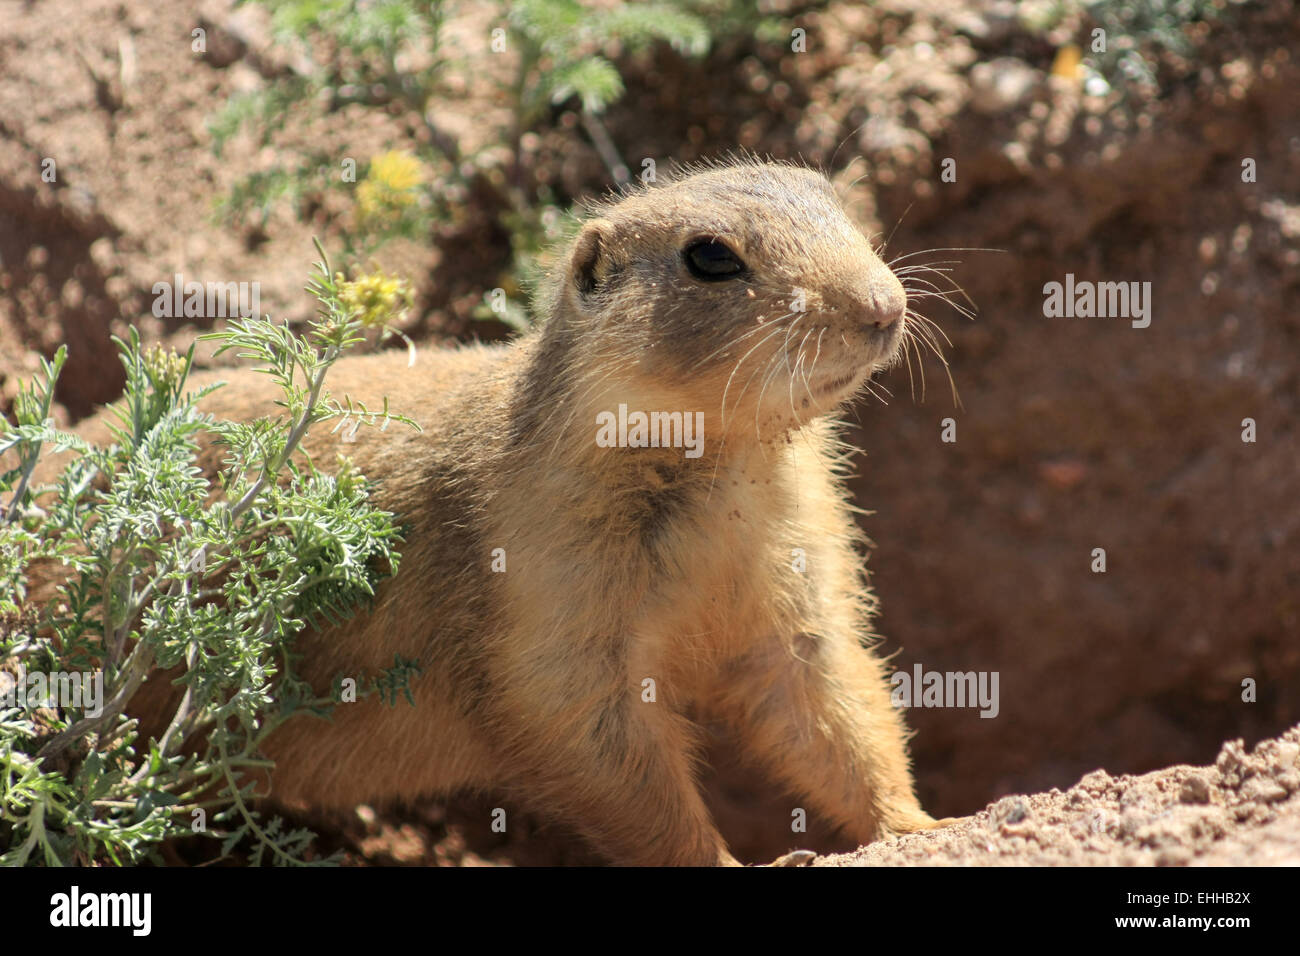 Tiere in New Mexico - Stock Image